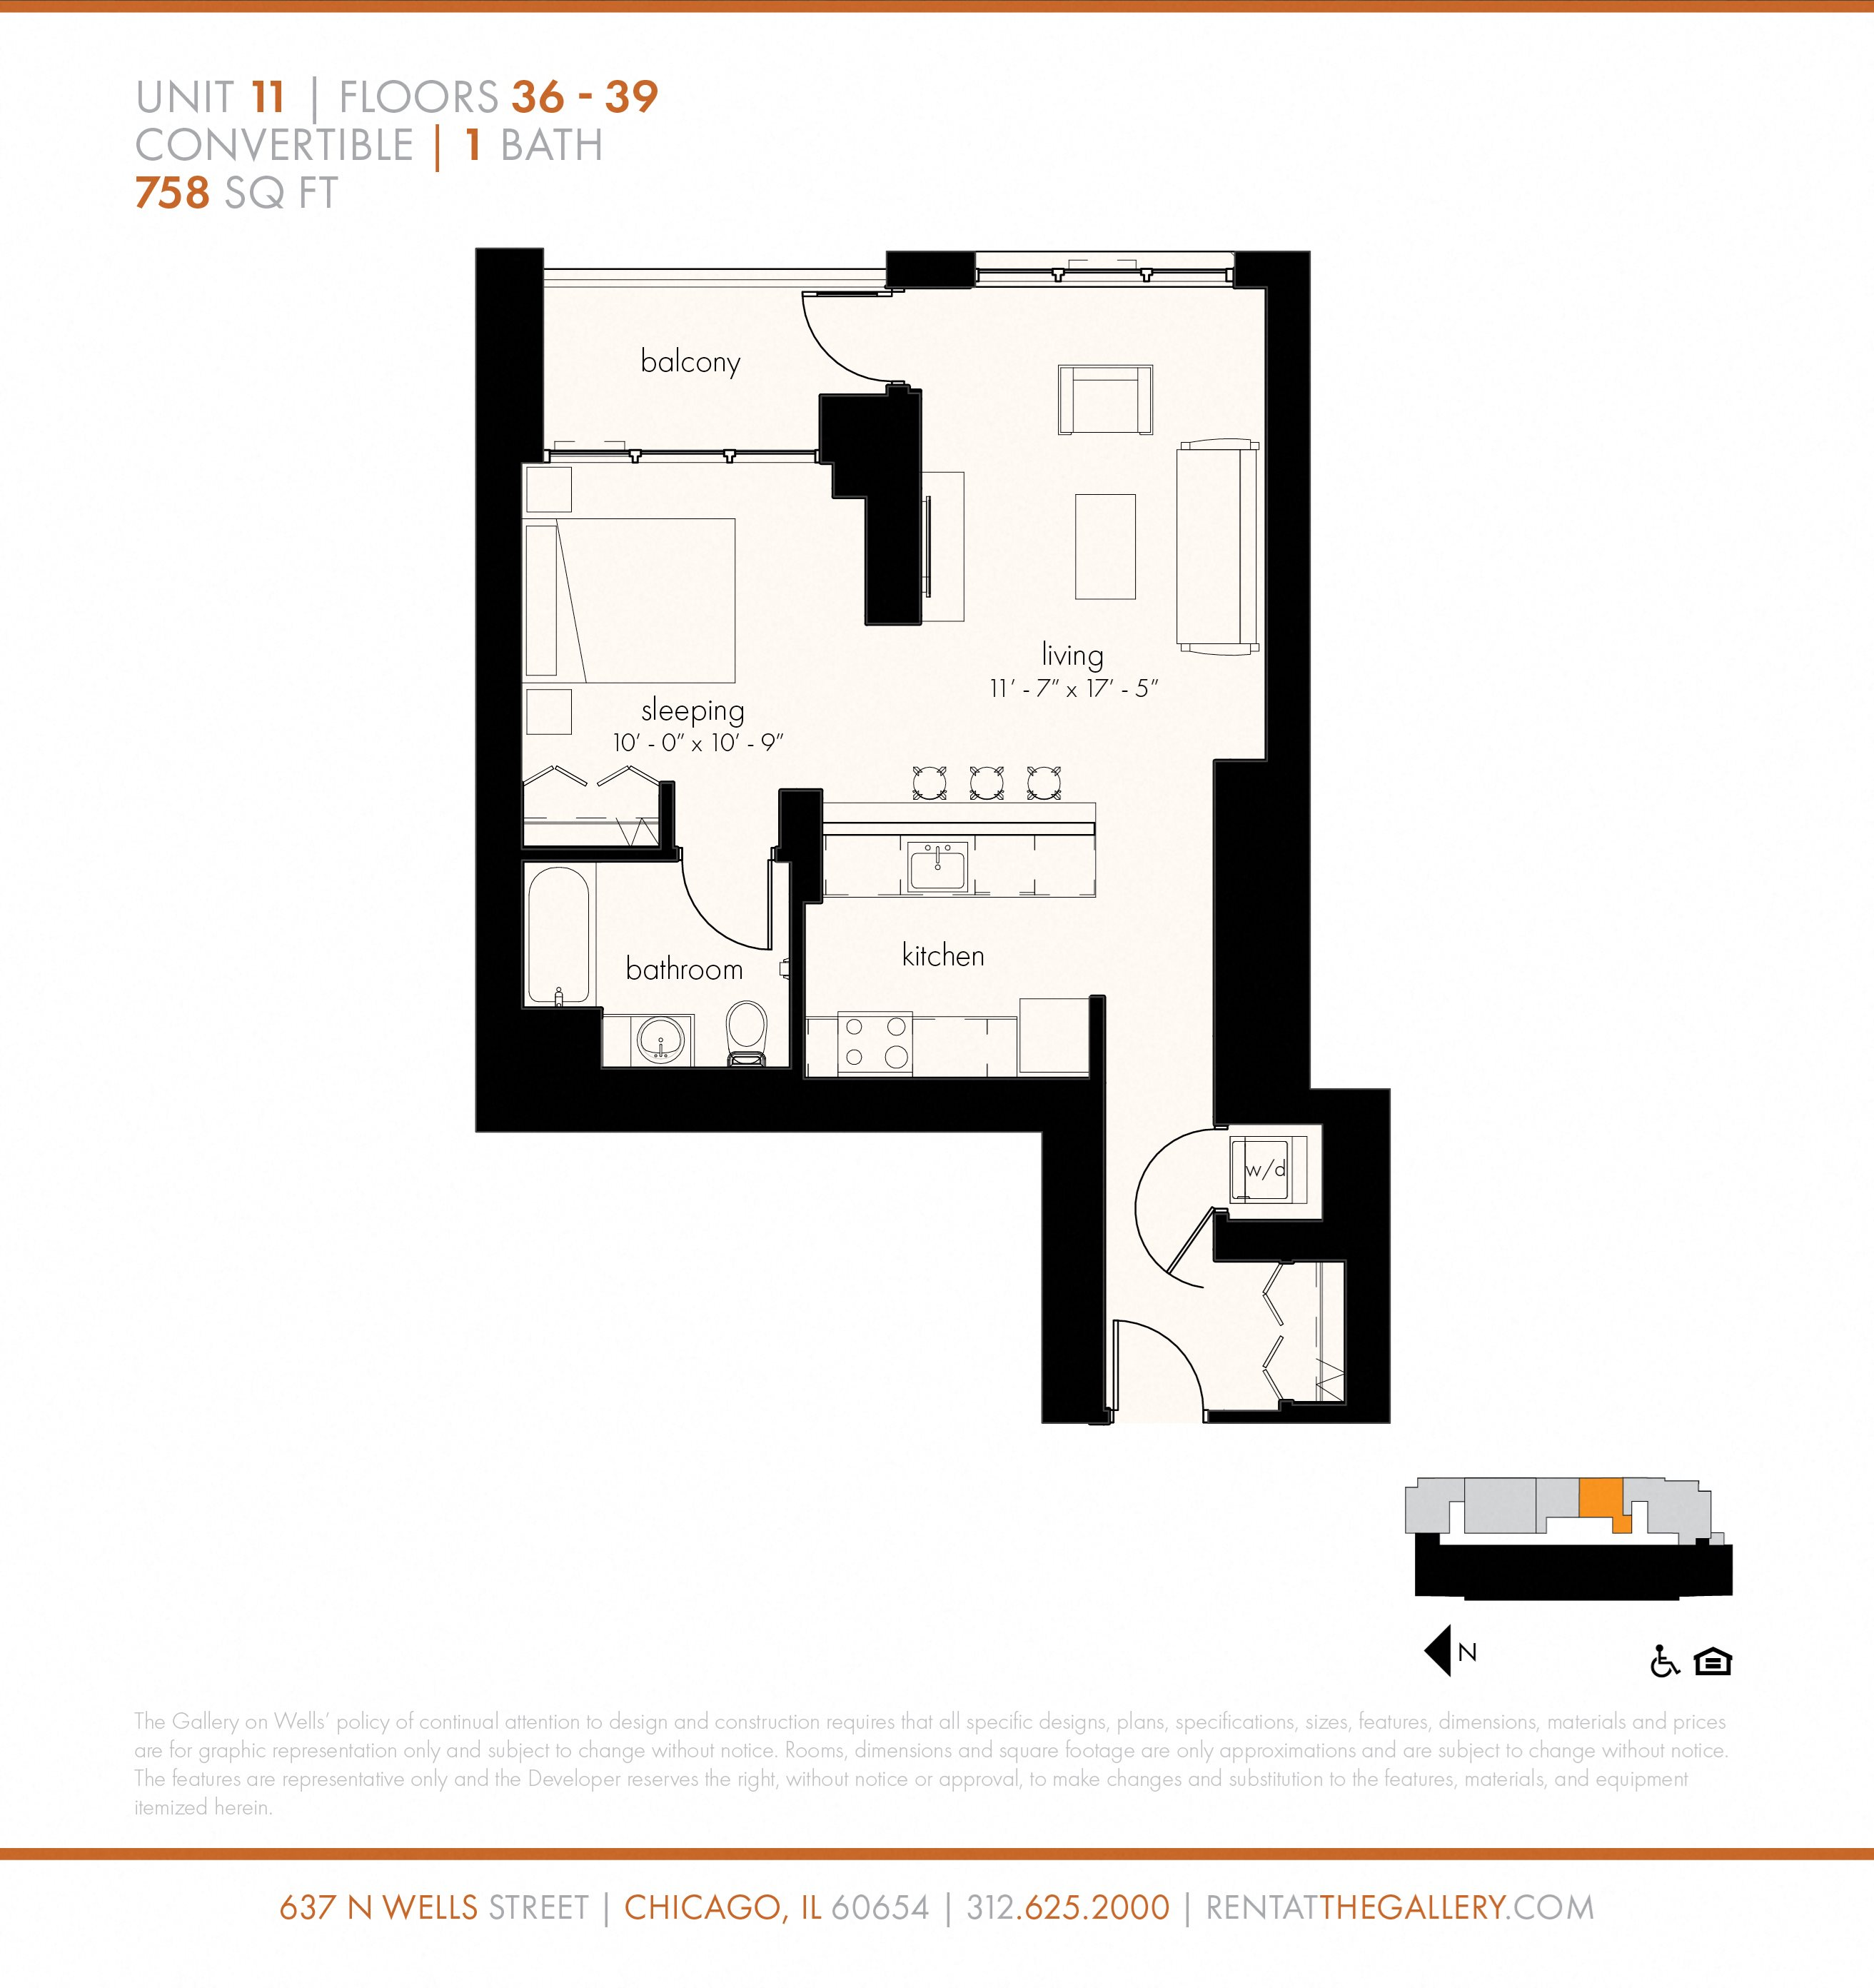 Junior One Bedroom (758 sf) Floor Plan 4